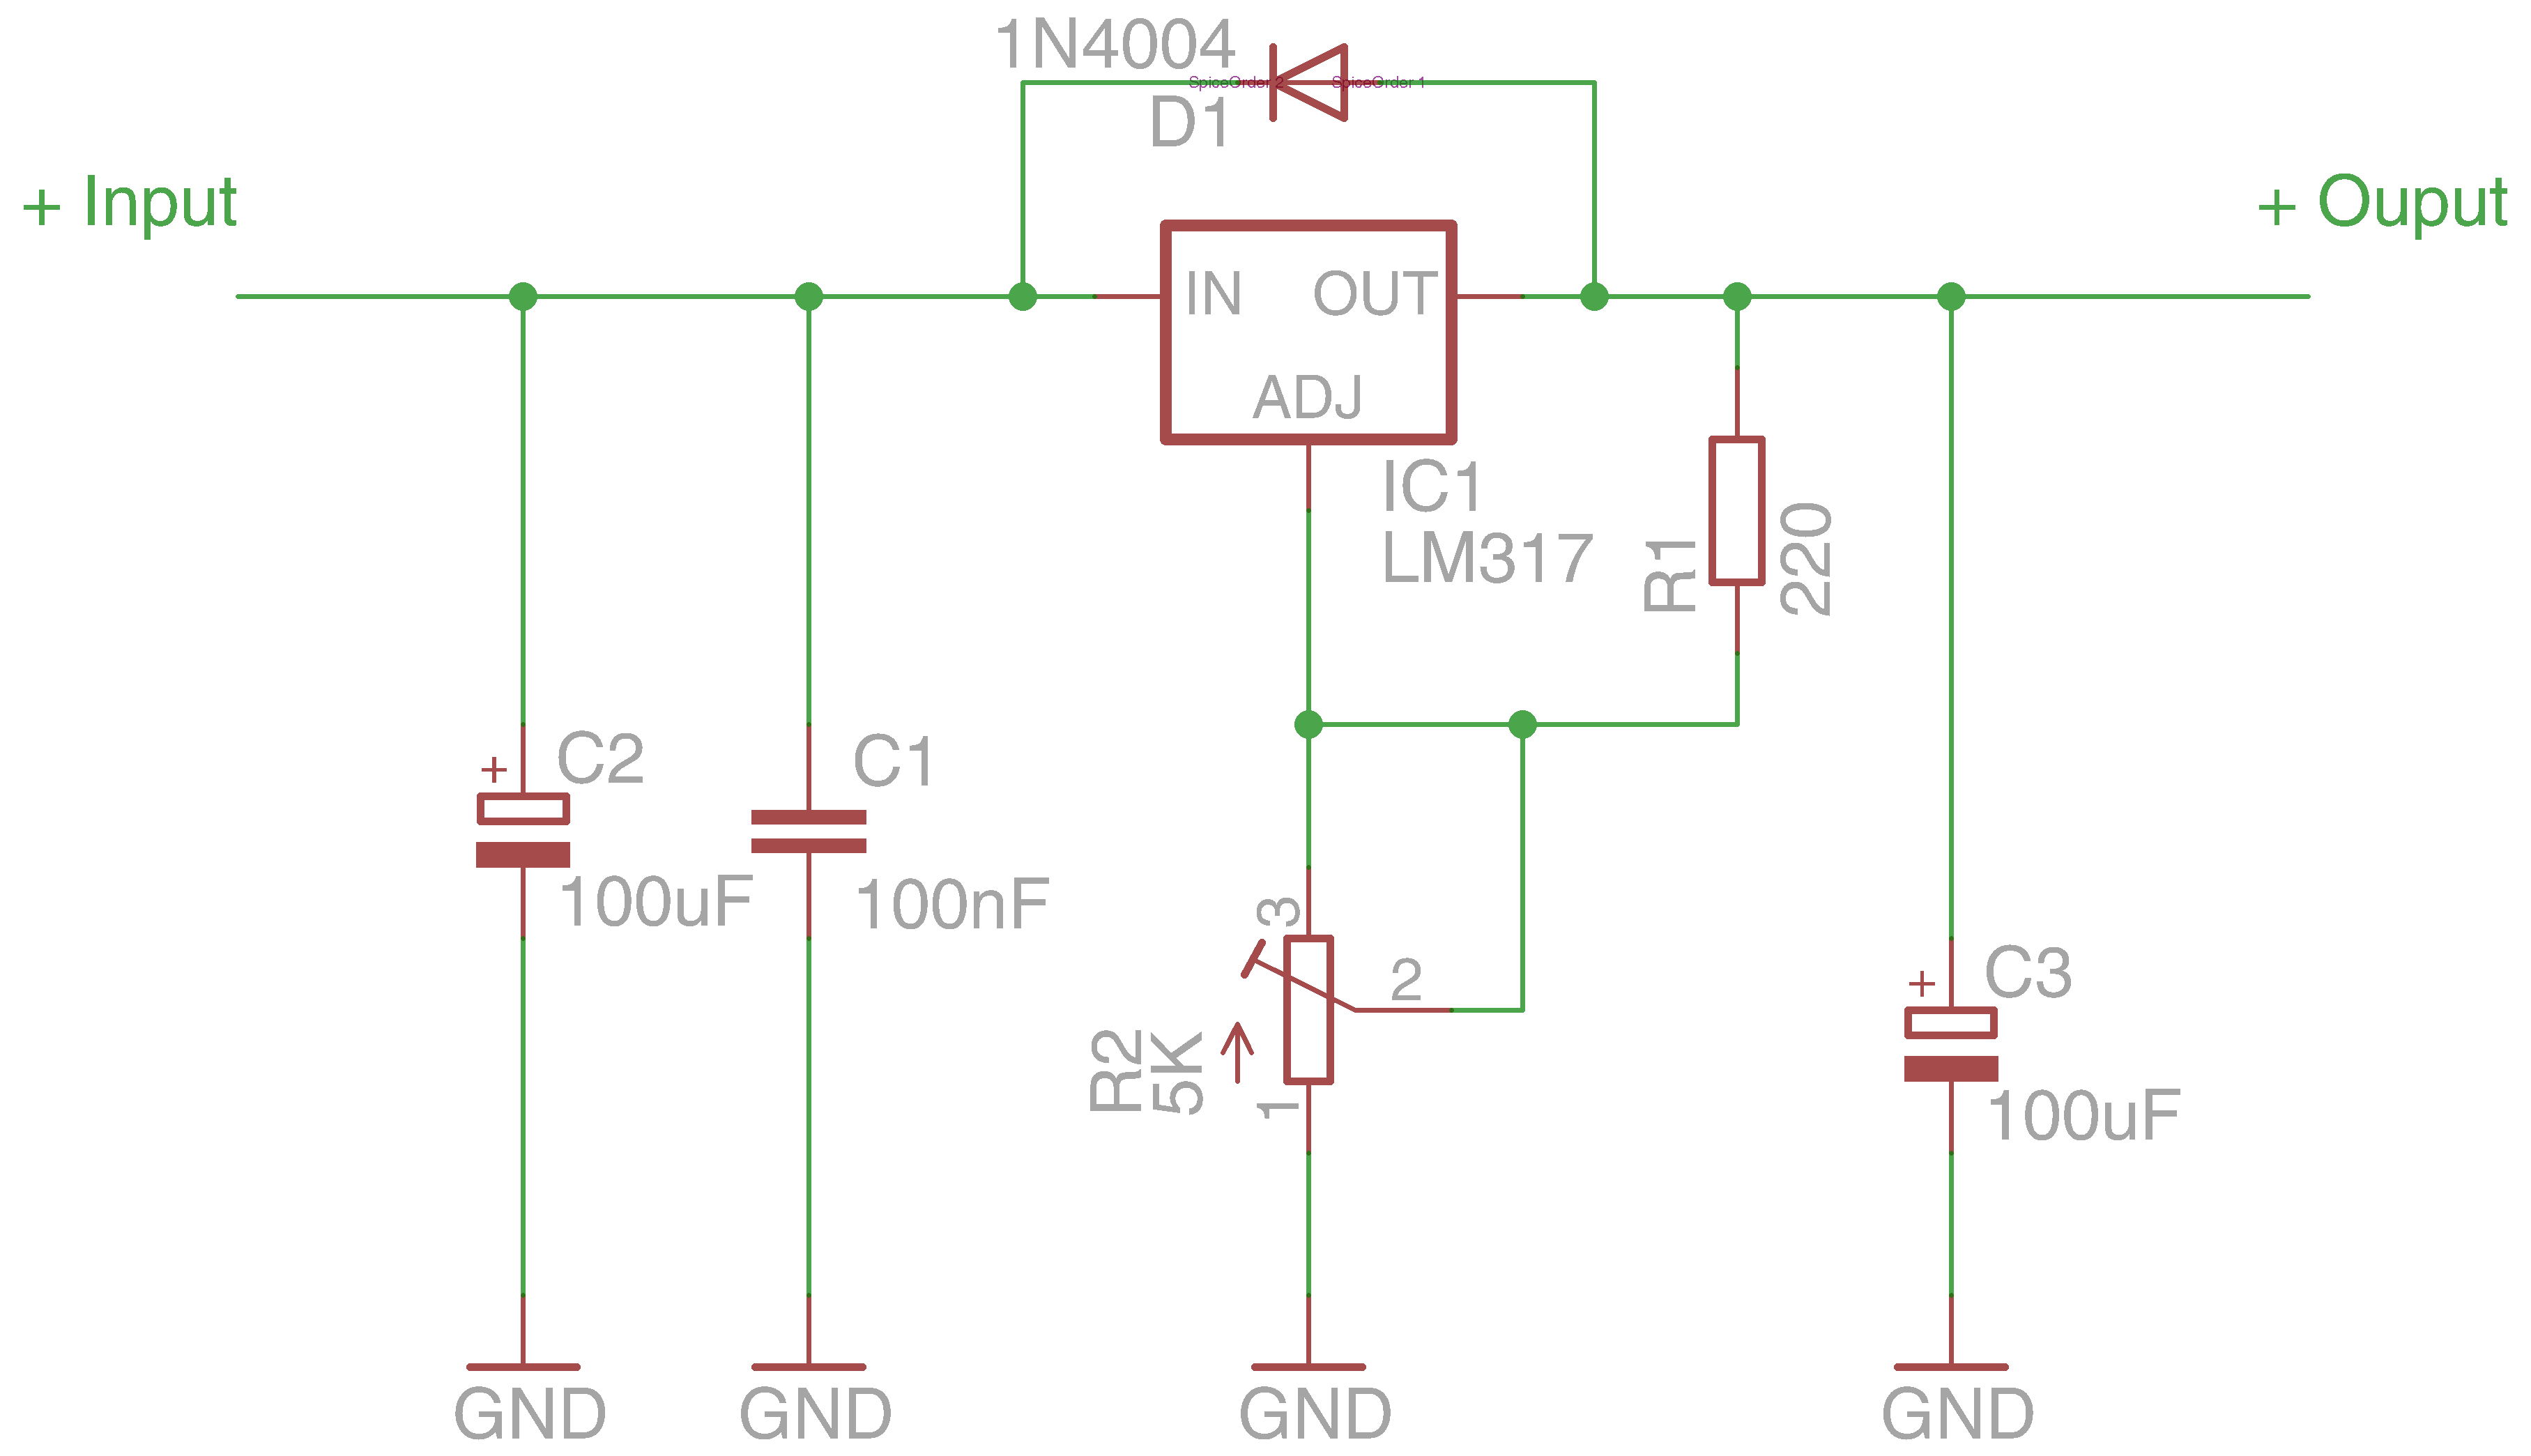 Spannungsregler variabel mit LM317 - All My Circuits